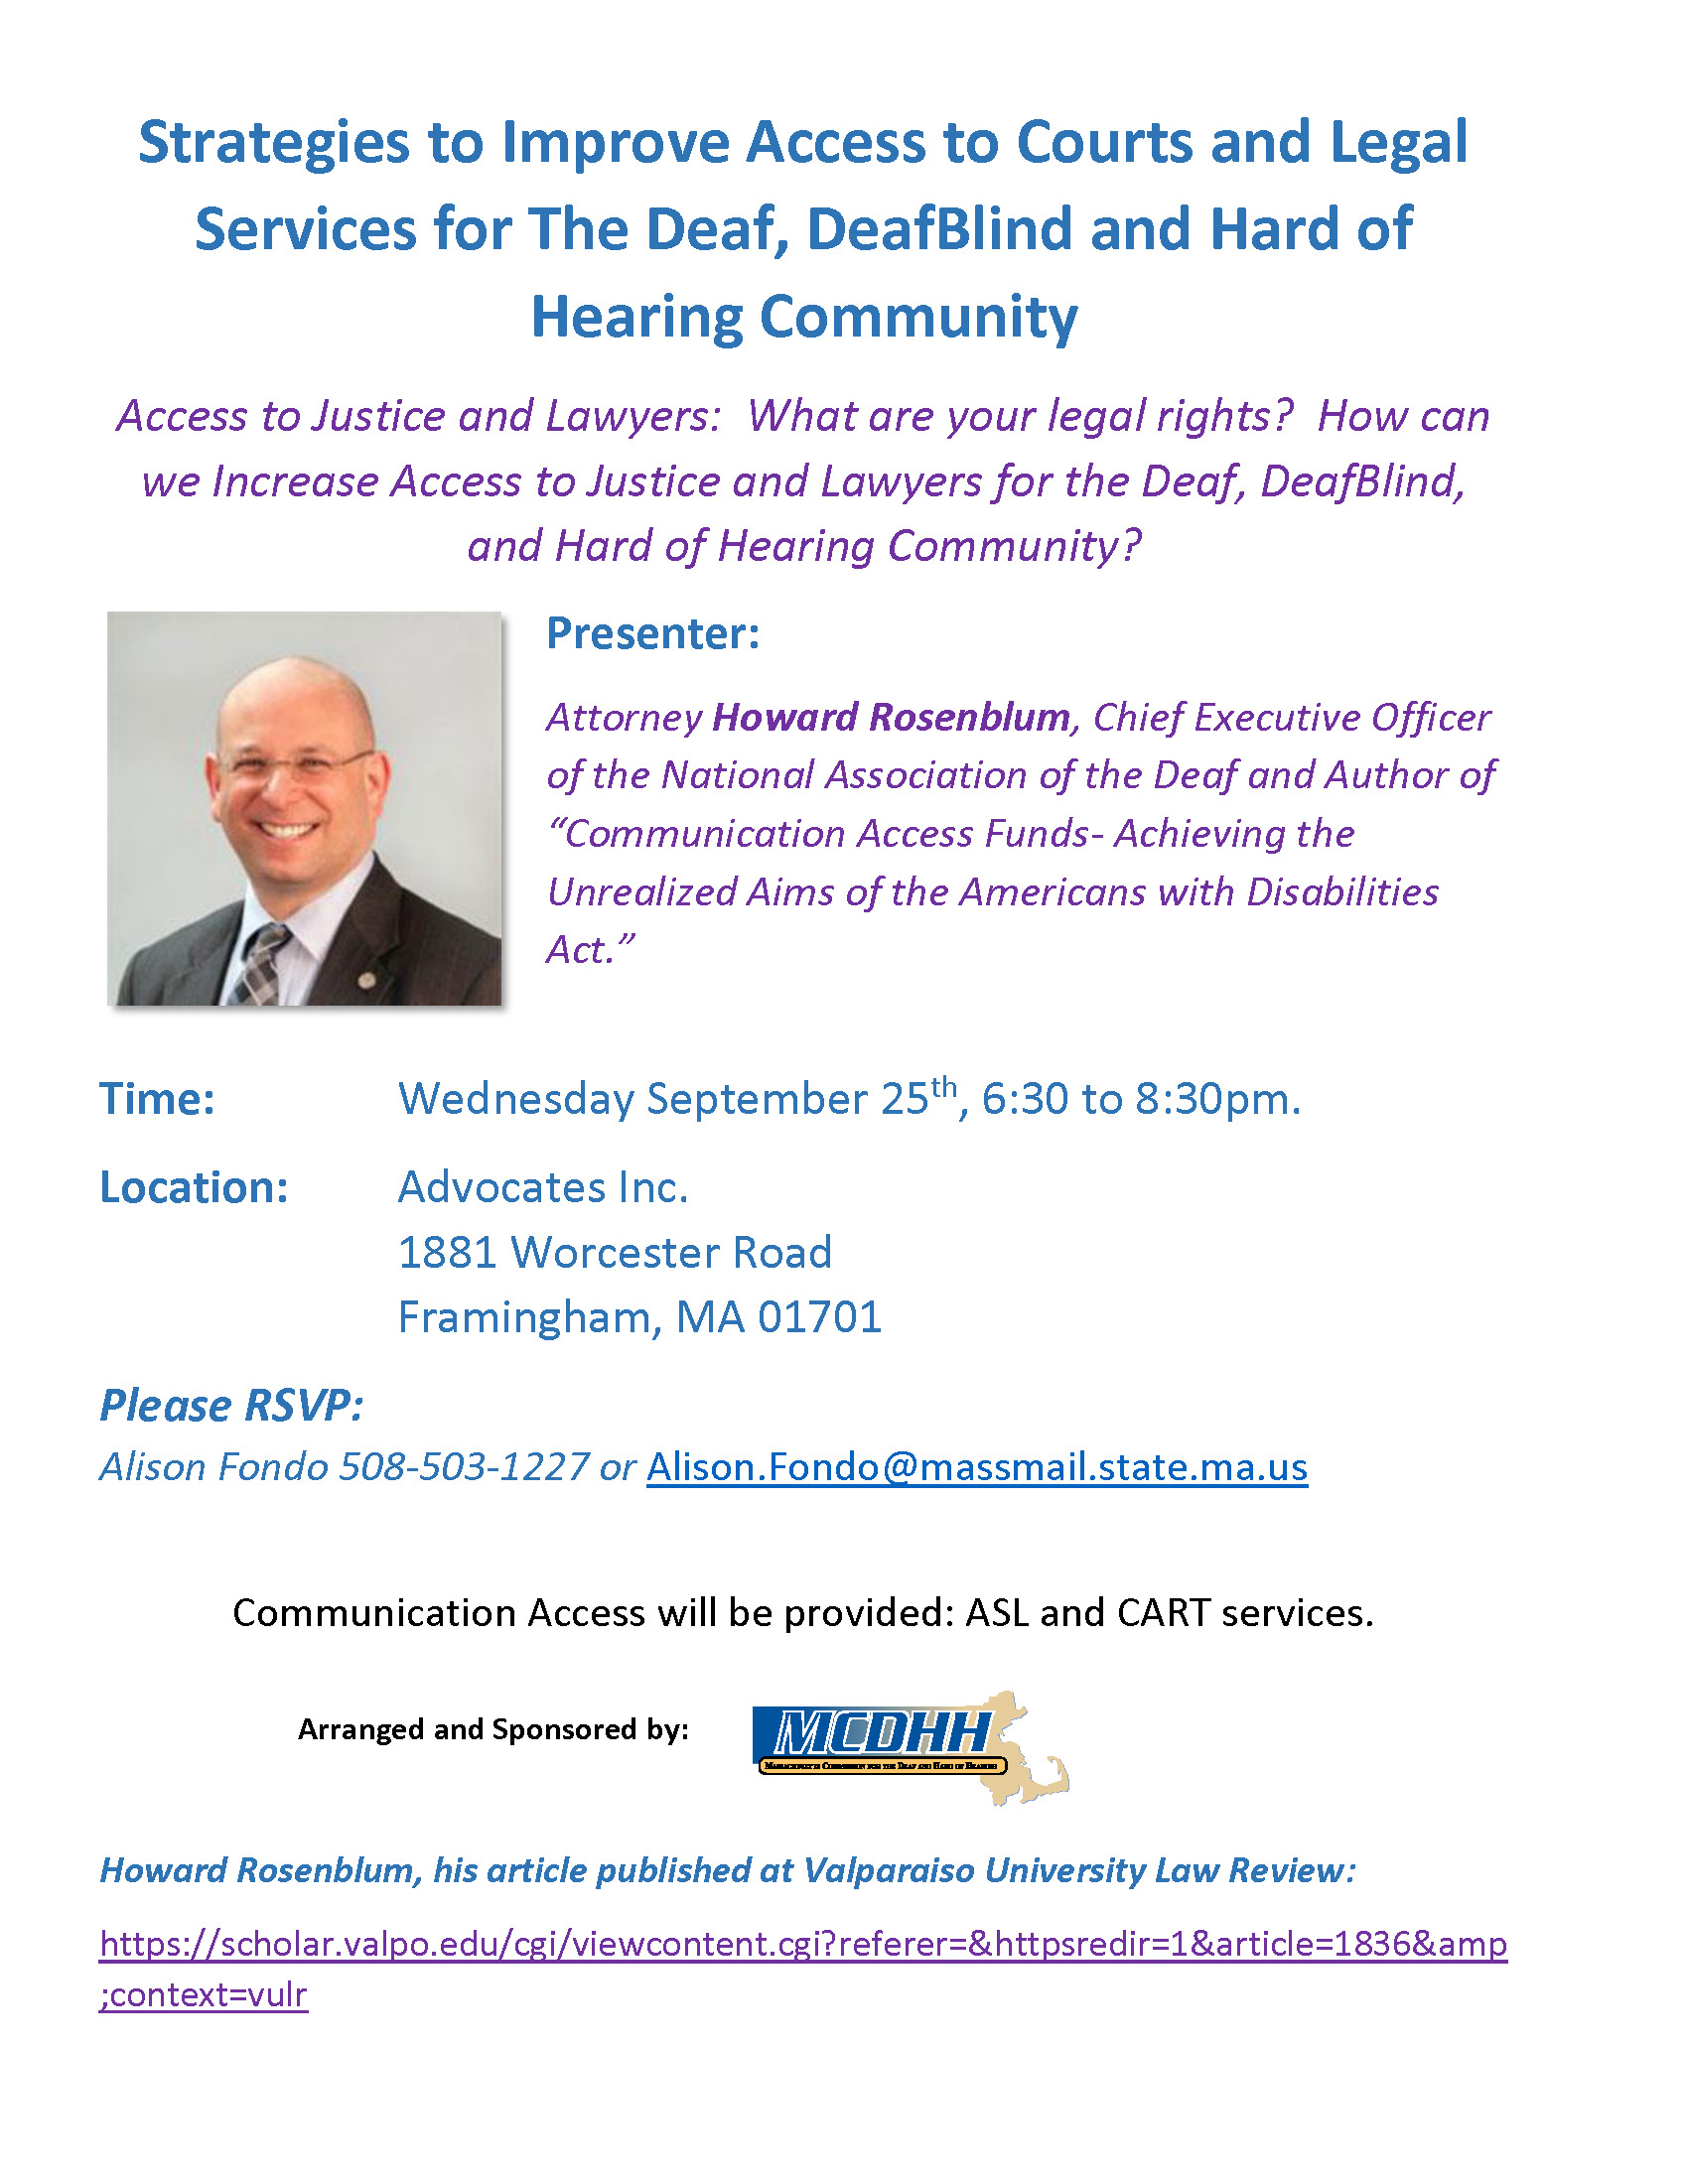 Mass Commission for Deaf Event with Howard Rosenblum